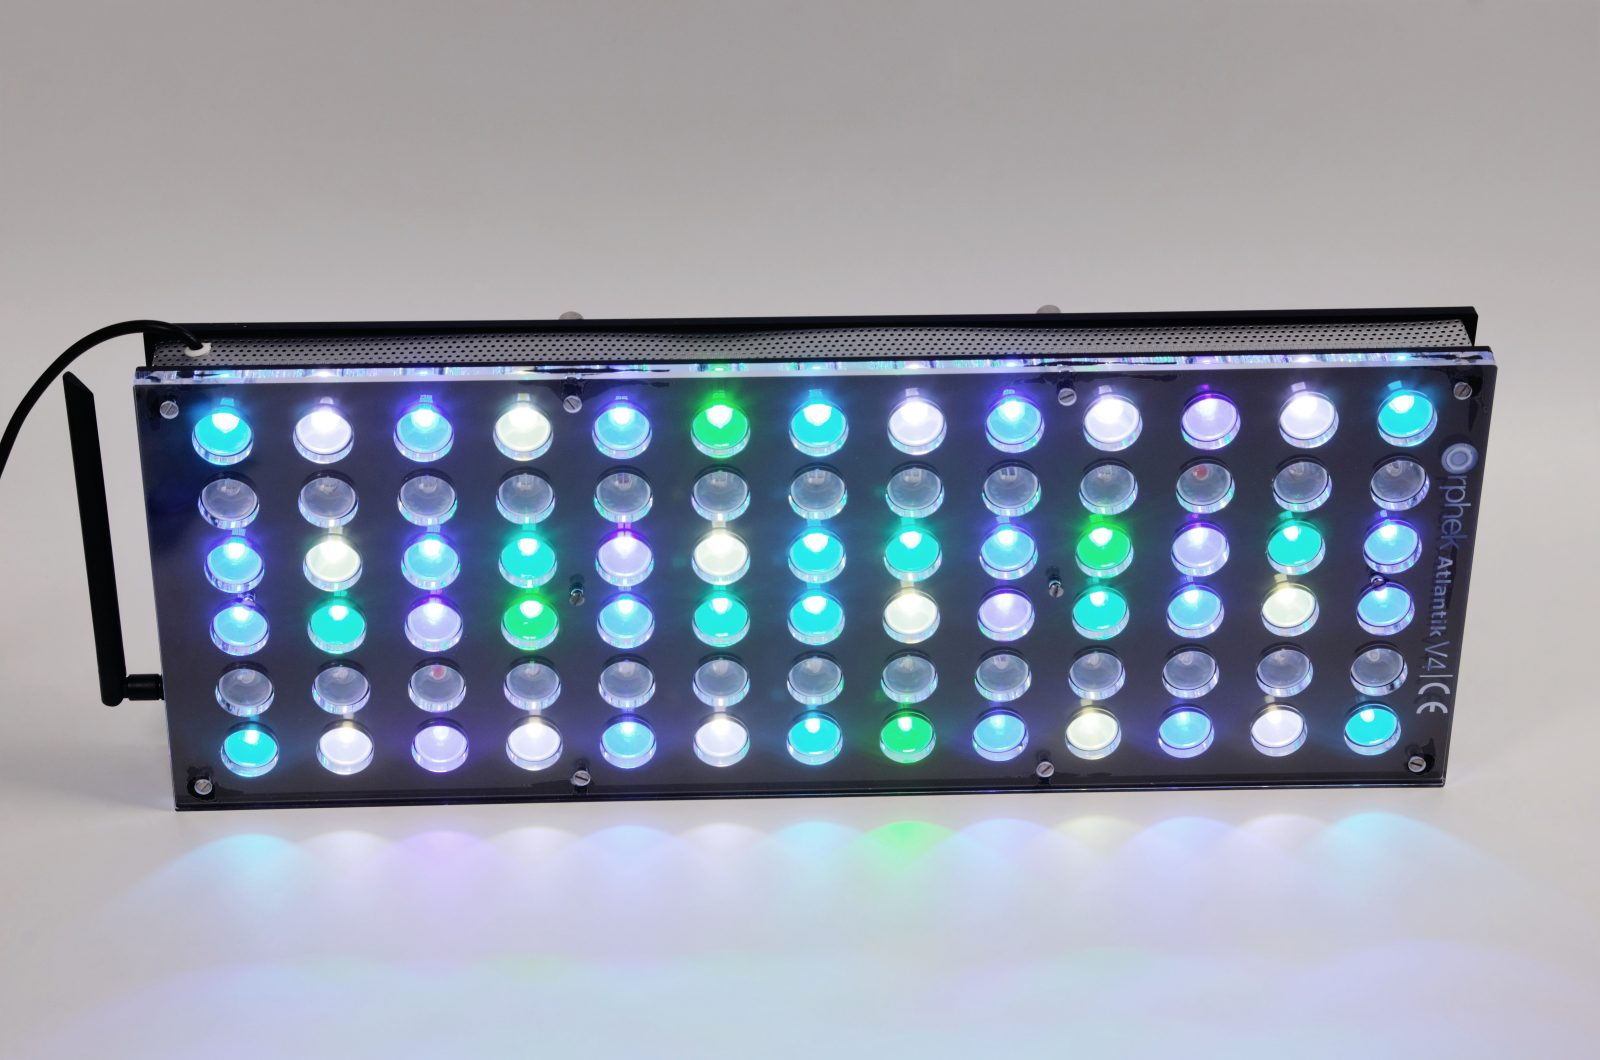 Orphek-Aquarium-LED-Lighting-Reef-Atlantik-V4-light-on-channel 1 + 2